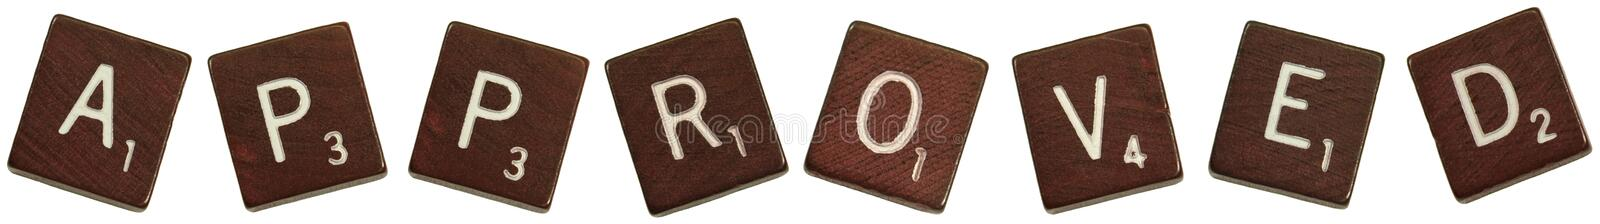 Approved tiles. Close up photo of tiles spelling out the word :approved royalty free stock image